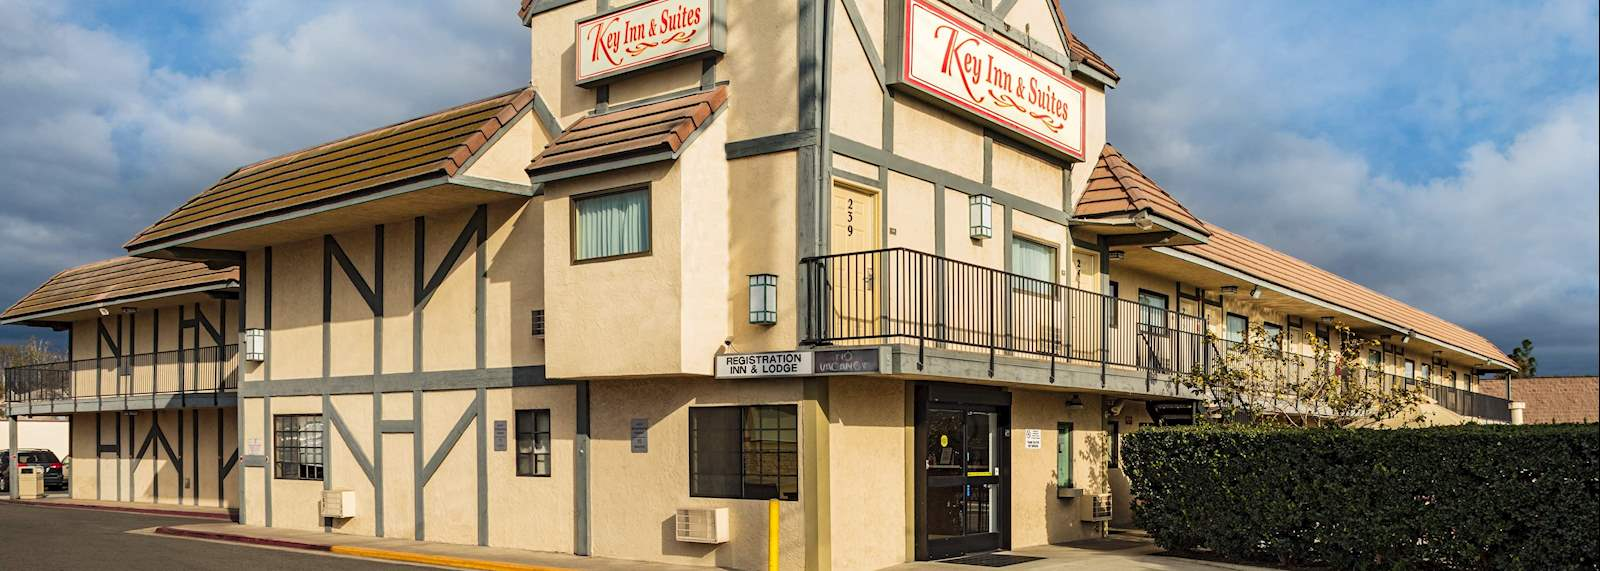 Key inn and suites Tustin - Exterior